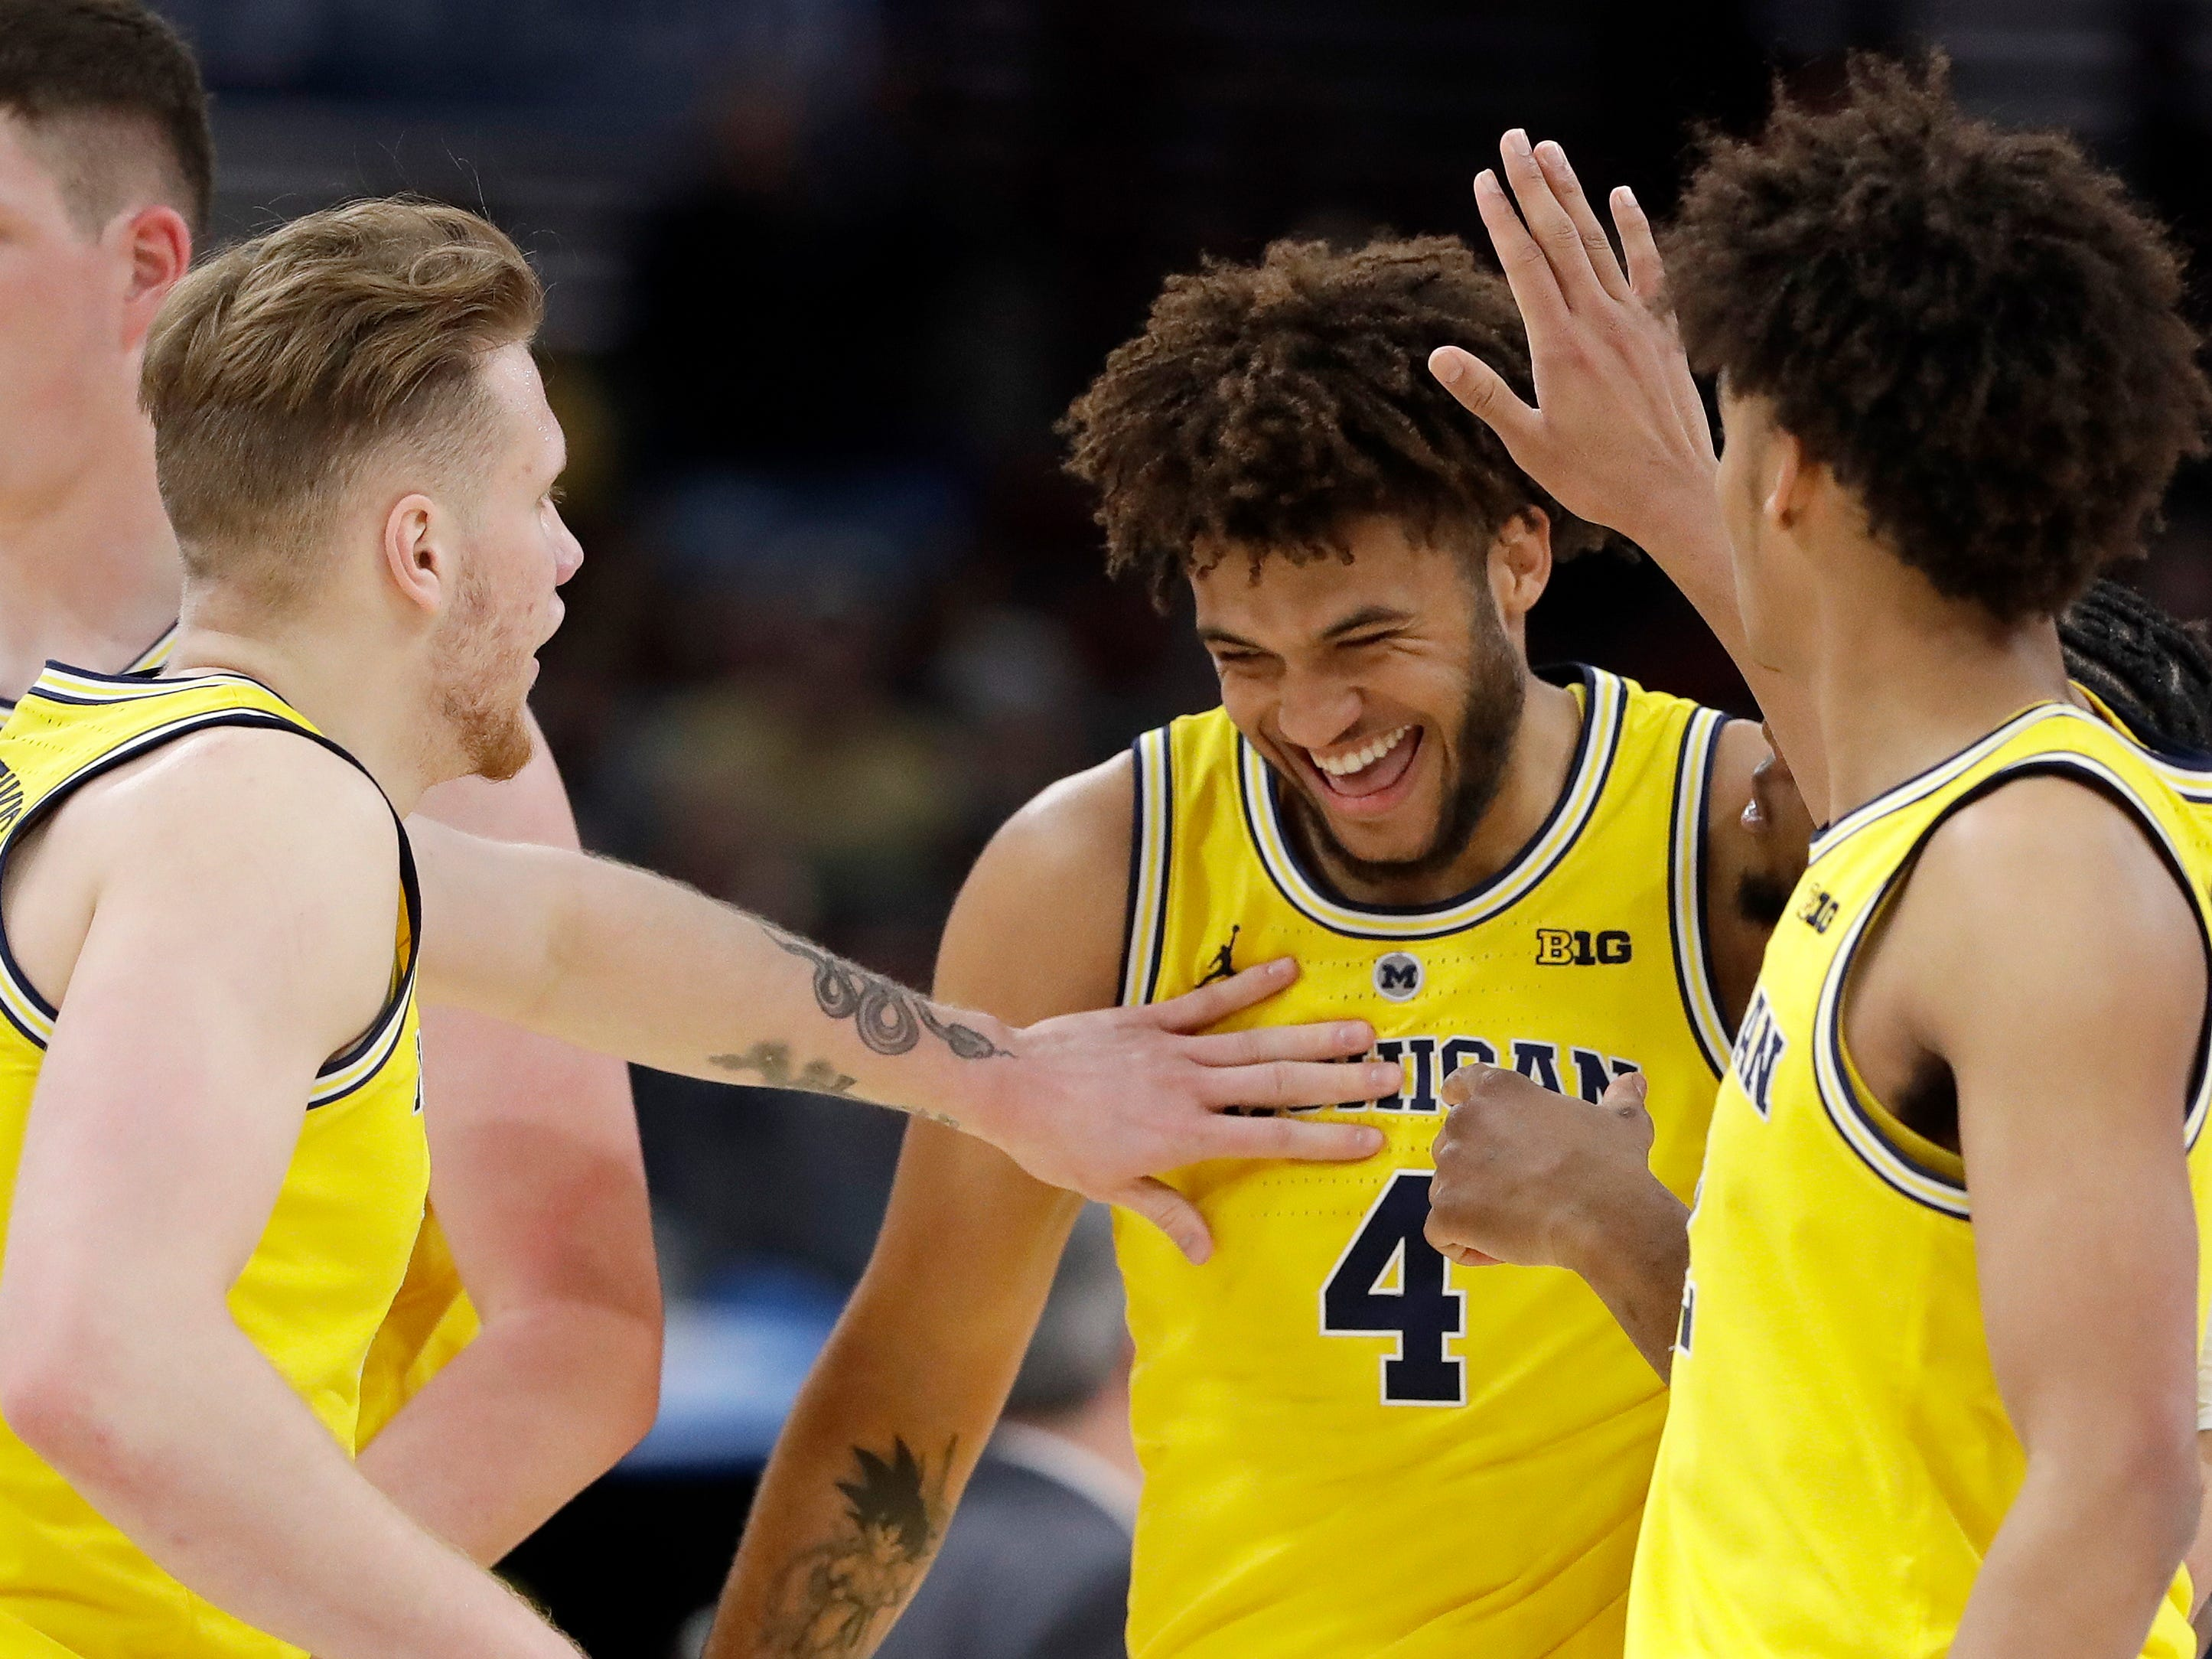 Michigan's Isaiah Livers is congratulated by his teammates after a dunk in Saturday's win over Minnesota.